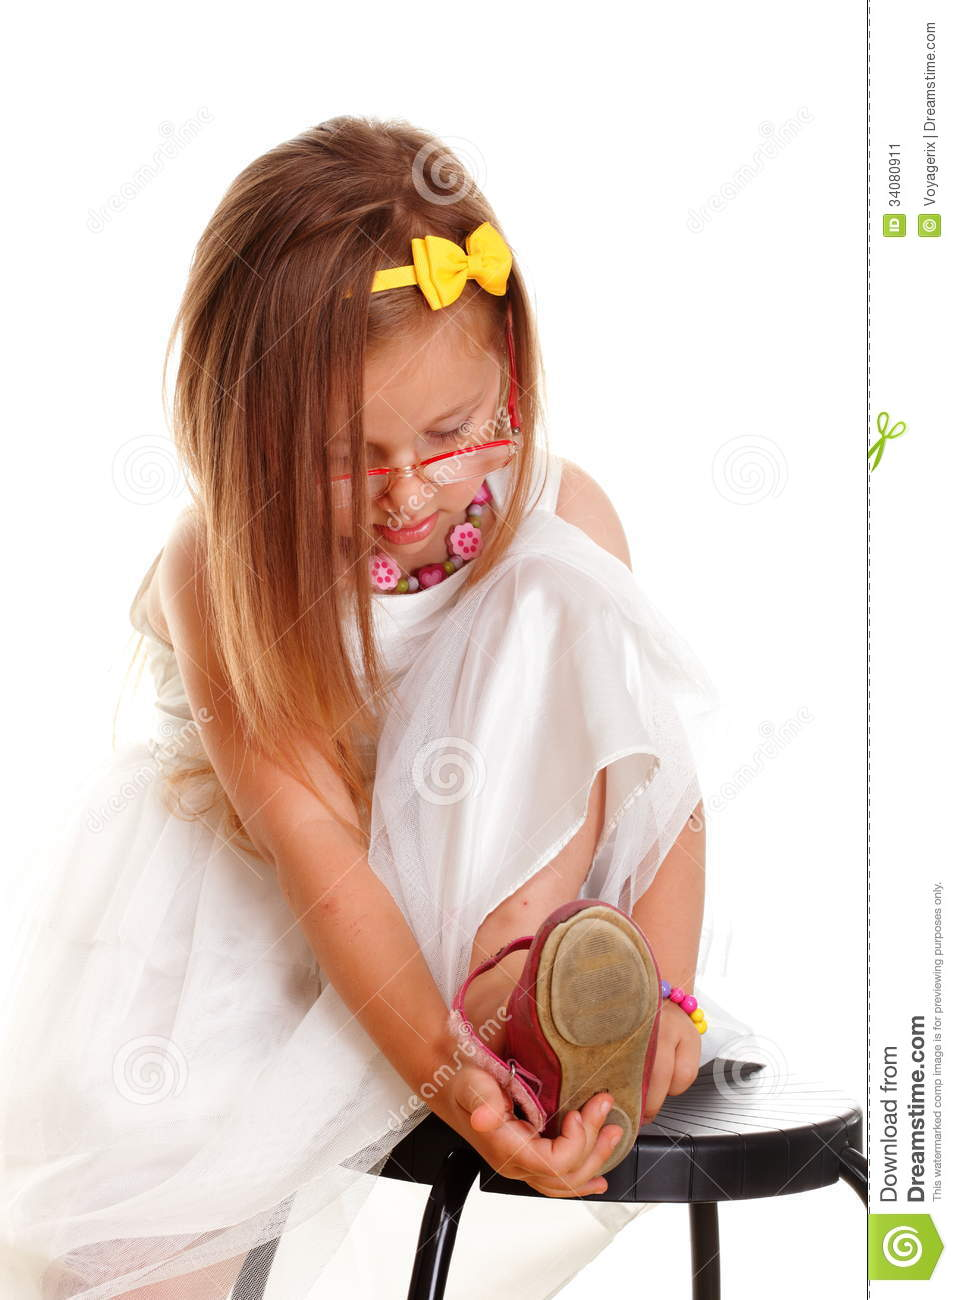 Cute Girl Putting On Her Shoe Royalty-Free Stock Image ...